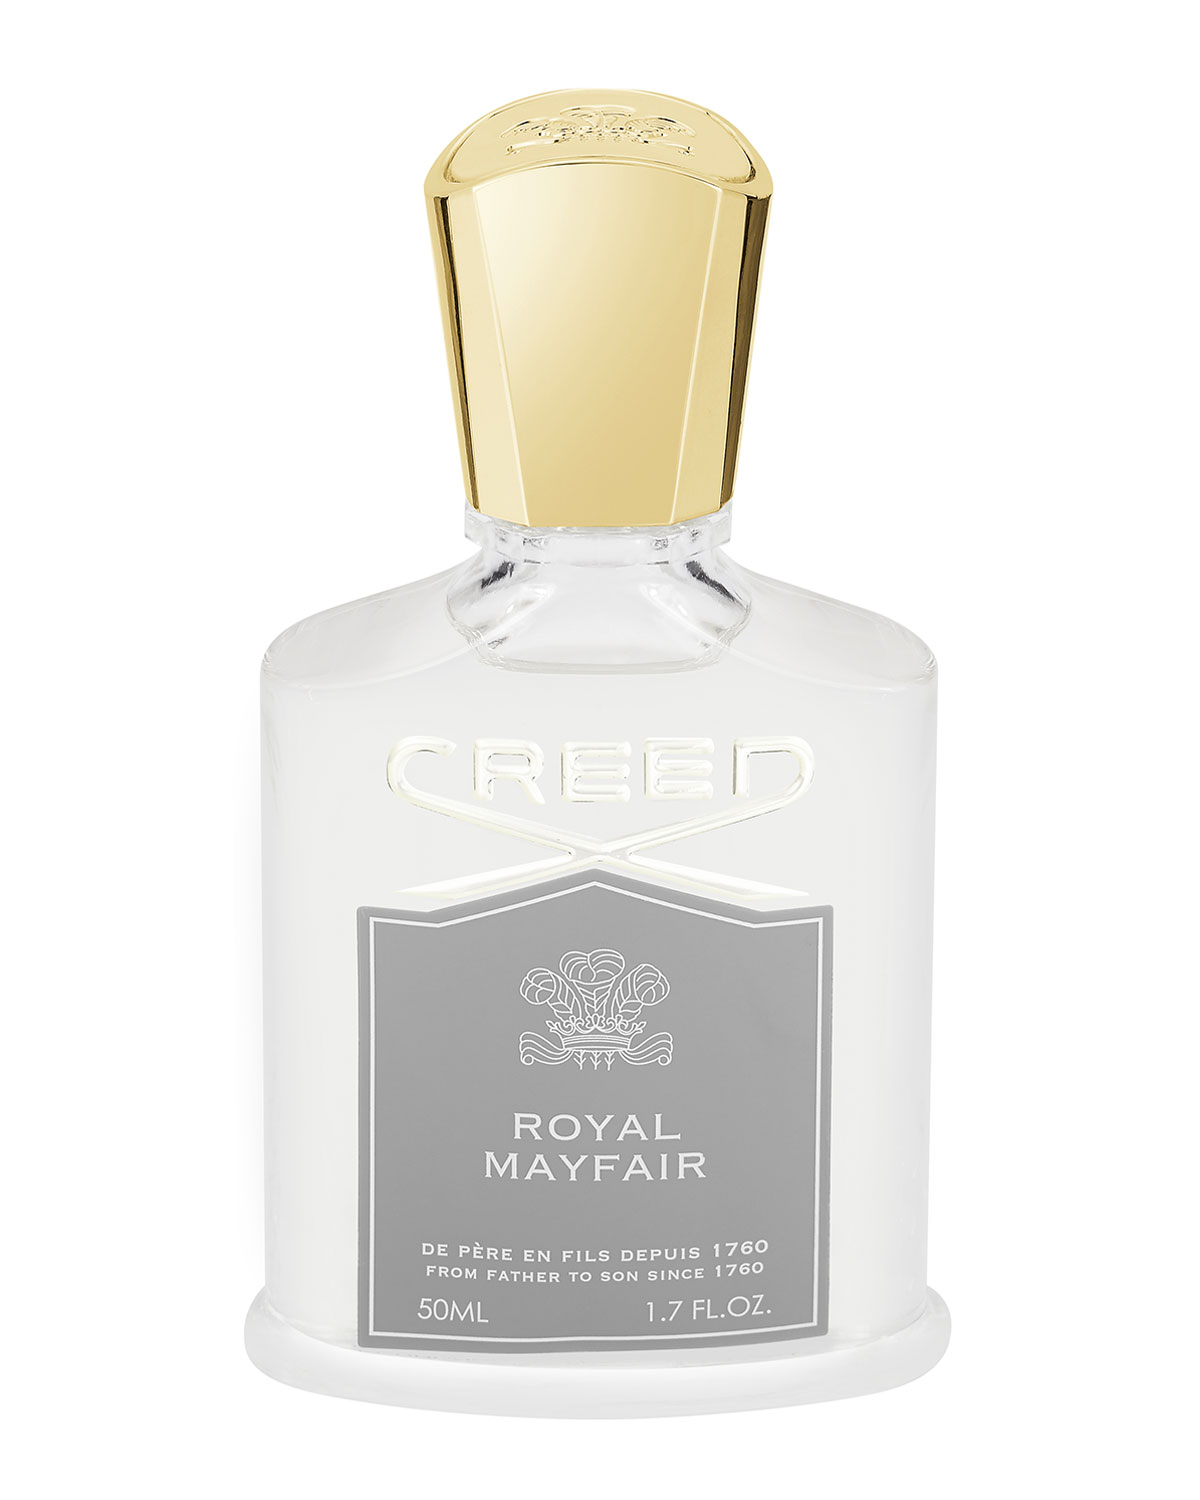 Creed Royal Mayfair Eau De Parfum 17 Oz 50 Ml Neiman Marcus